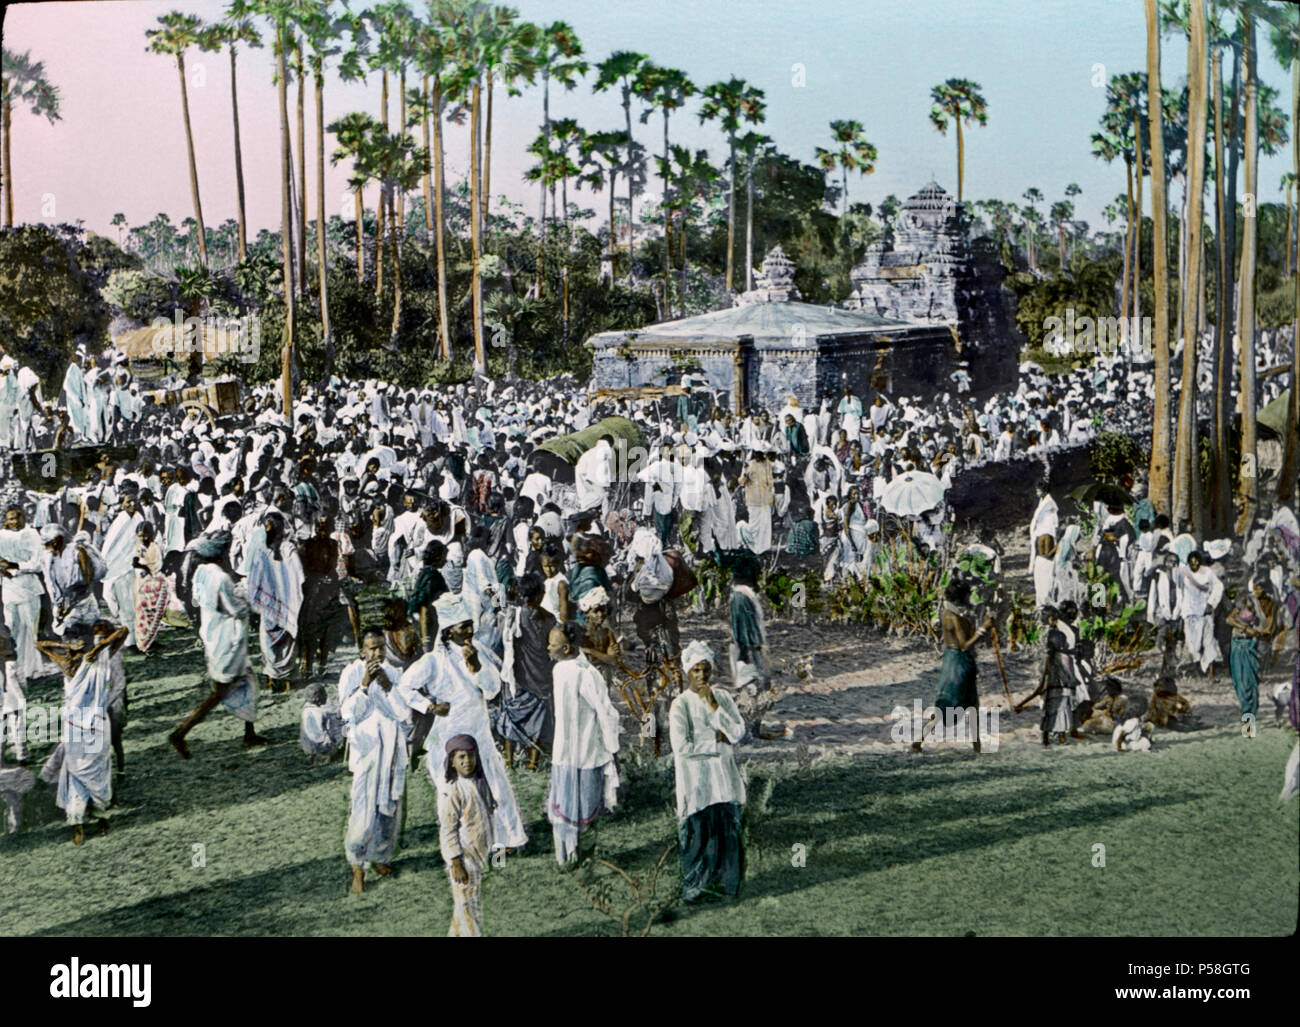 Magha Purnima Festival, Masulipatnam, India, Hand-Colored Magic Lantern Slide, Newton & Company, 1910 - Stock Image